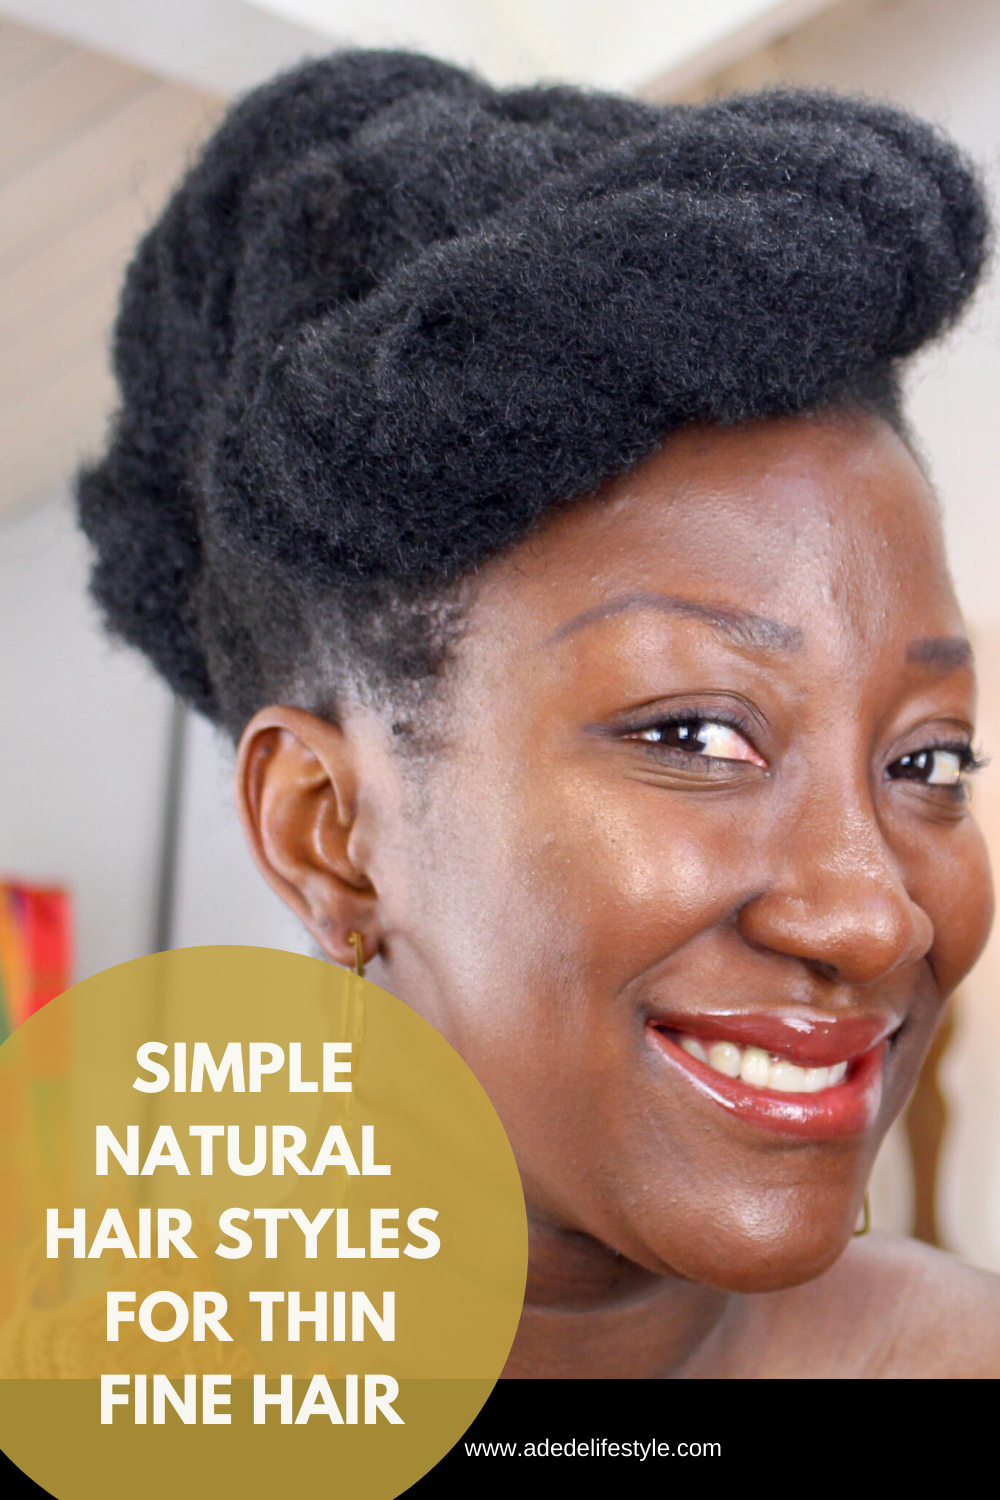 Simple Natural Hairstyles For Thin Fine Hair